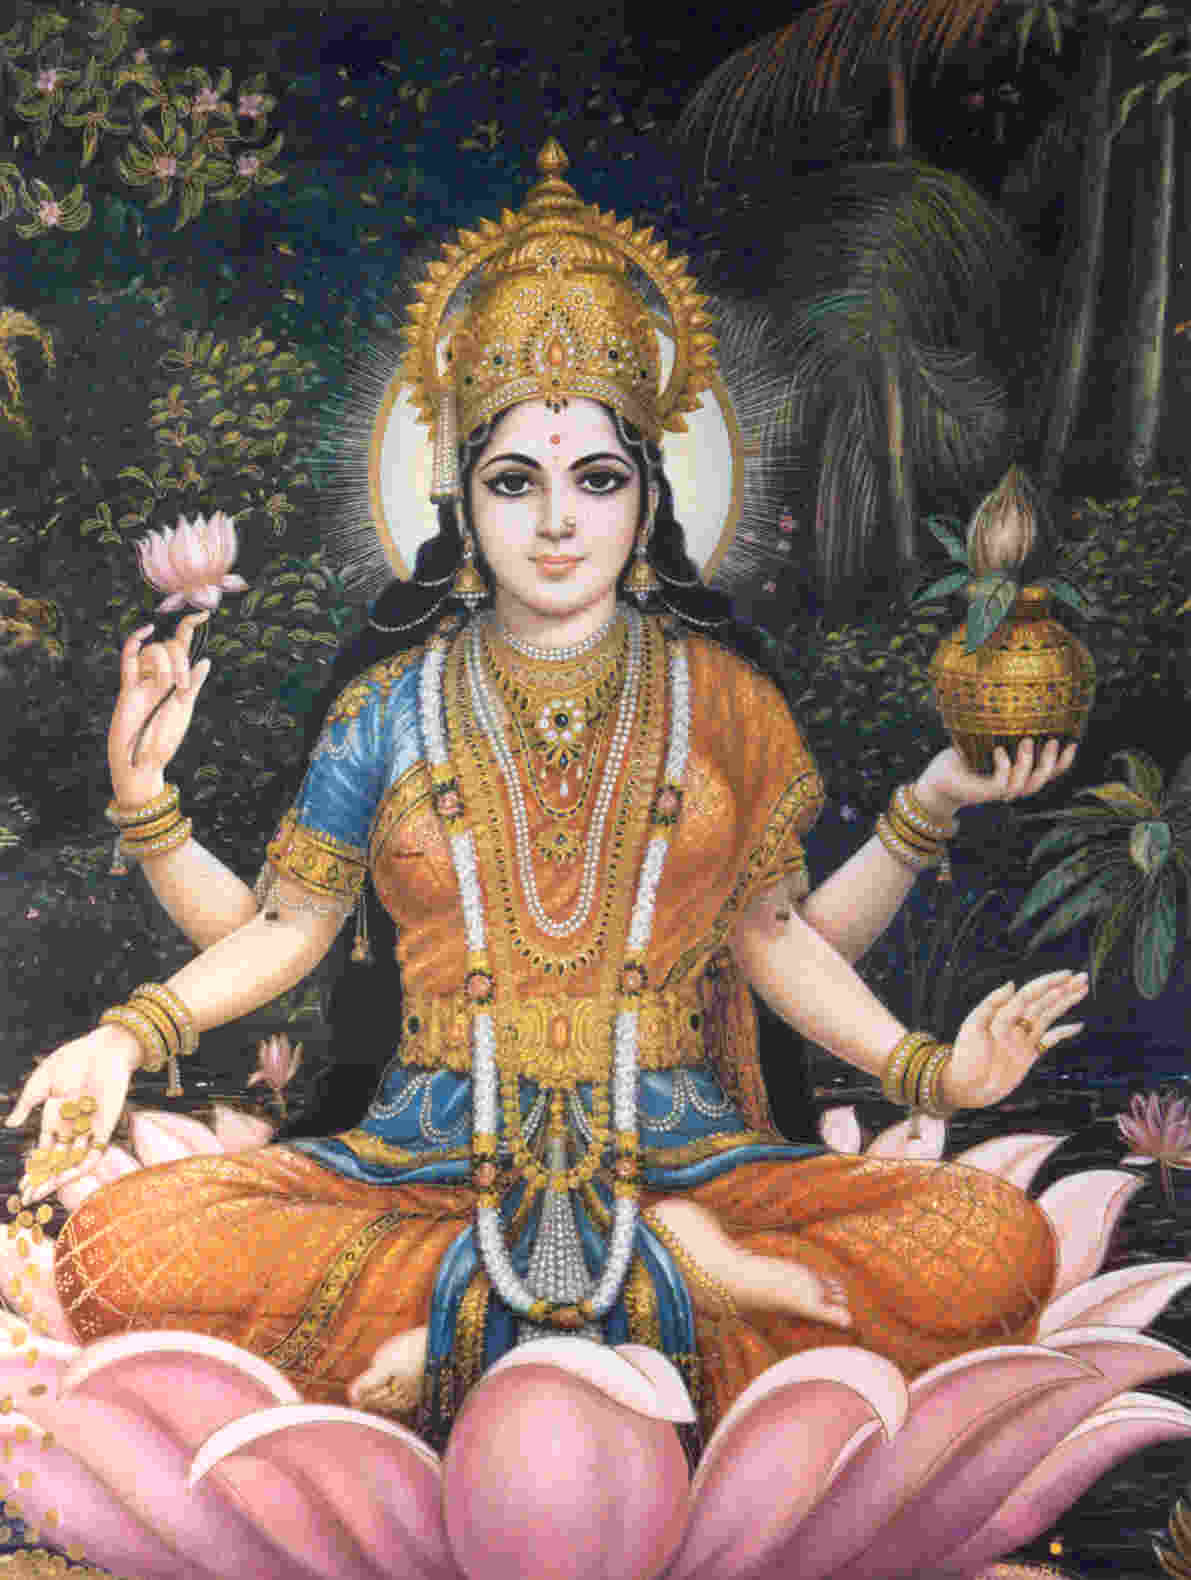 Goddess Lakshmi is the consort